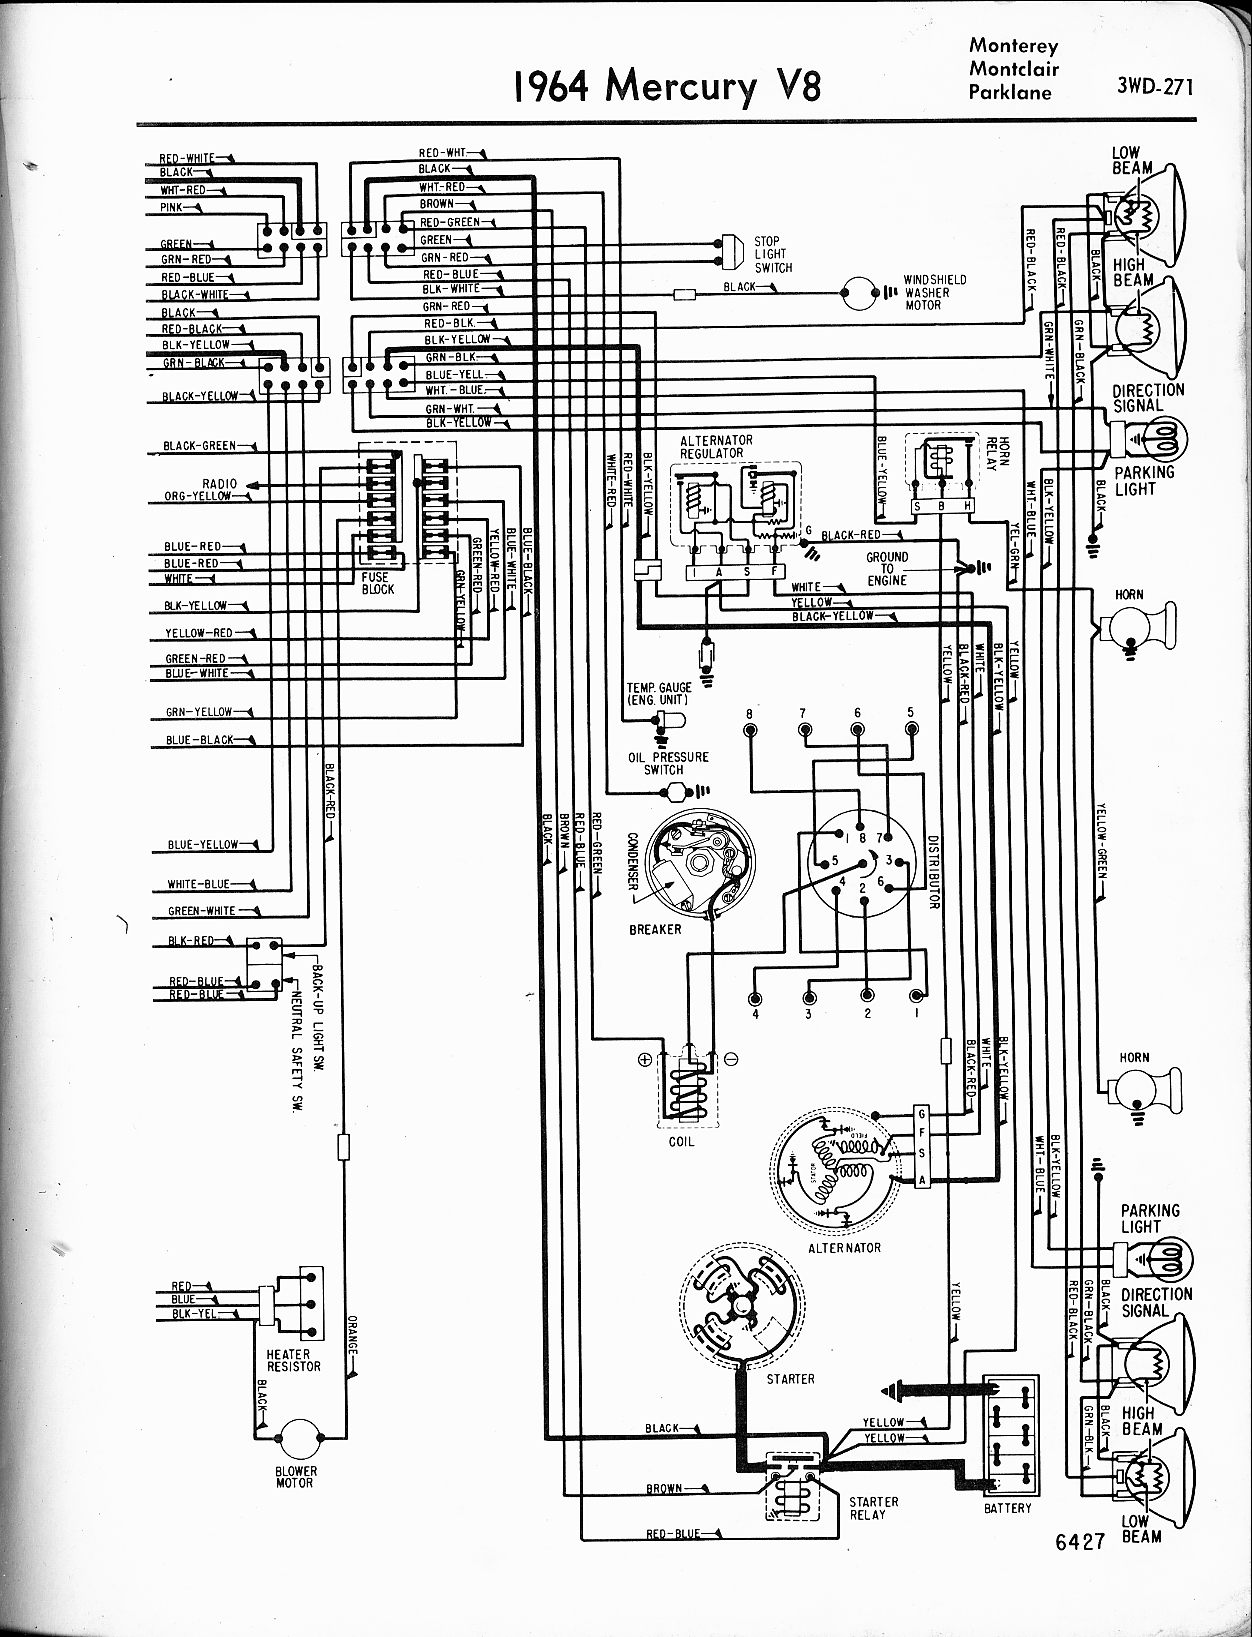 MWire5765 271 mercury wiring diagrams the old car manual project  at alyssarenee.co